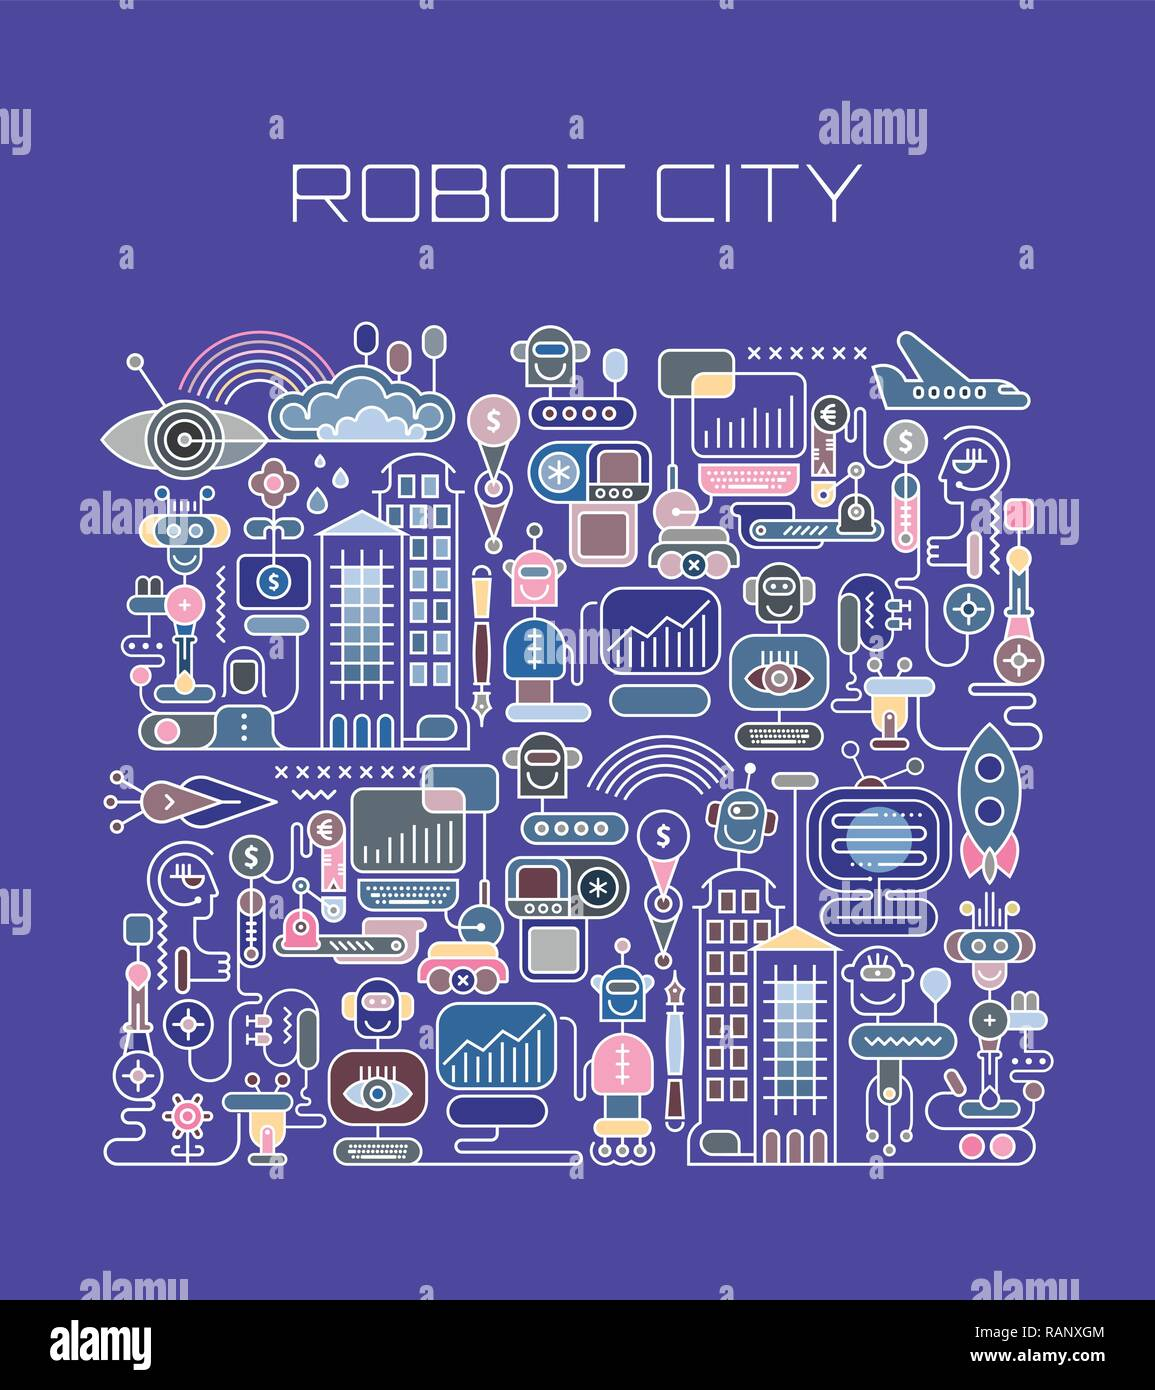 Colorful isolated on a blue background Robot City vector illustration. Welcome to the future, were funny robots will do all the boring job. City of th Stock Vector